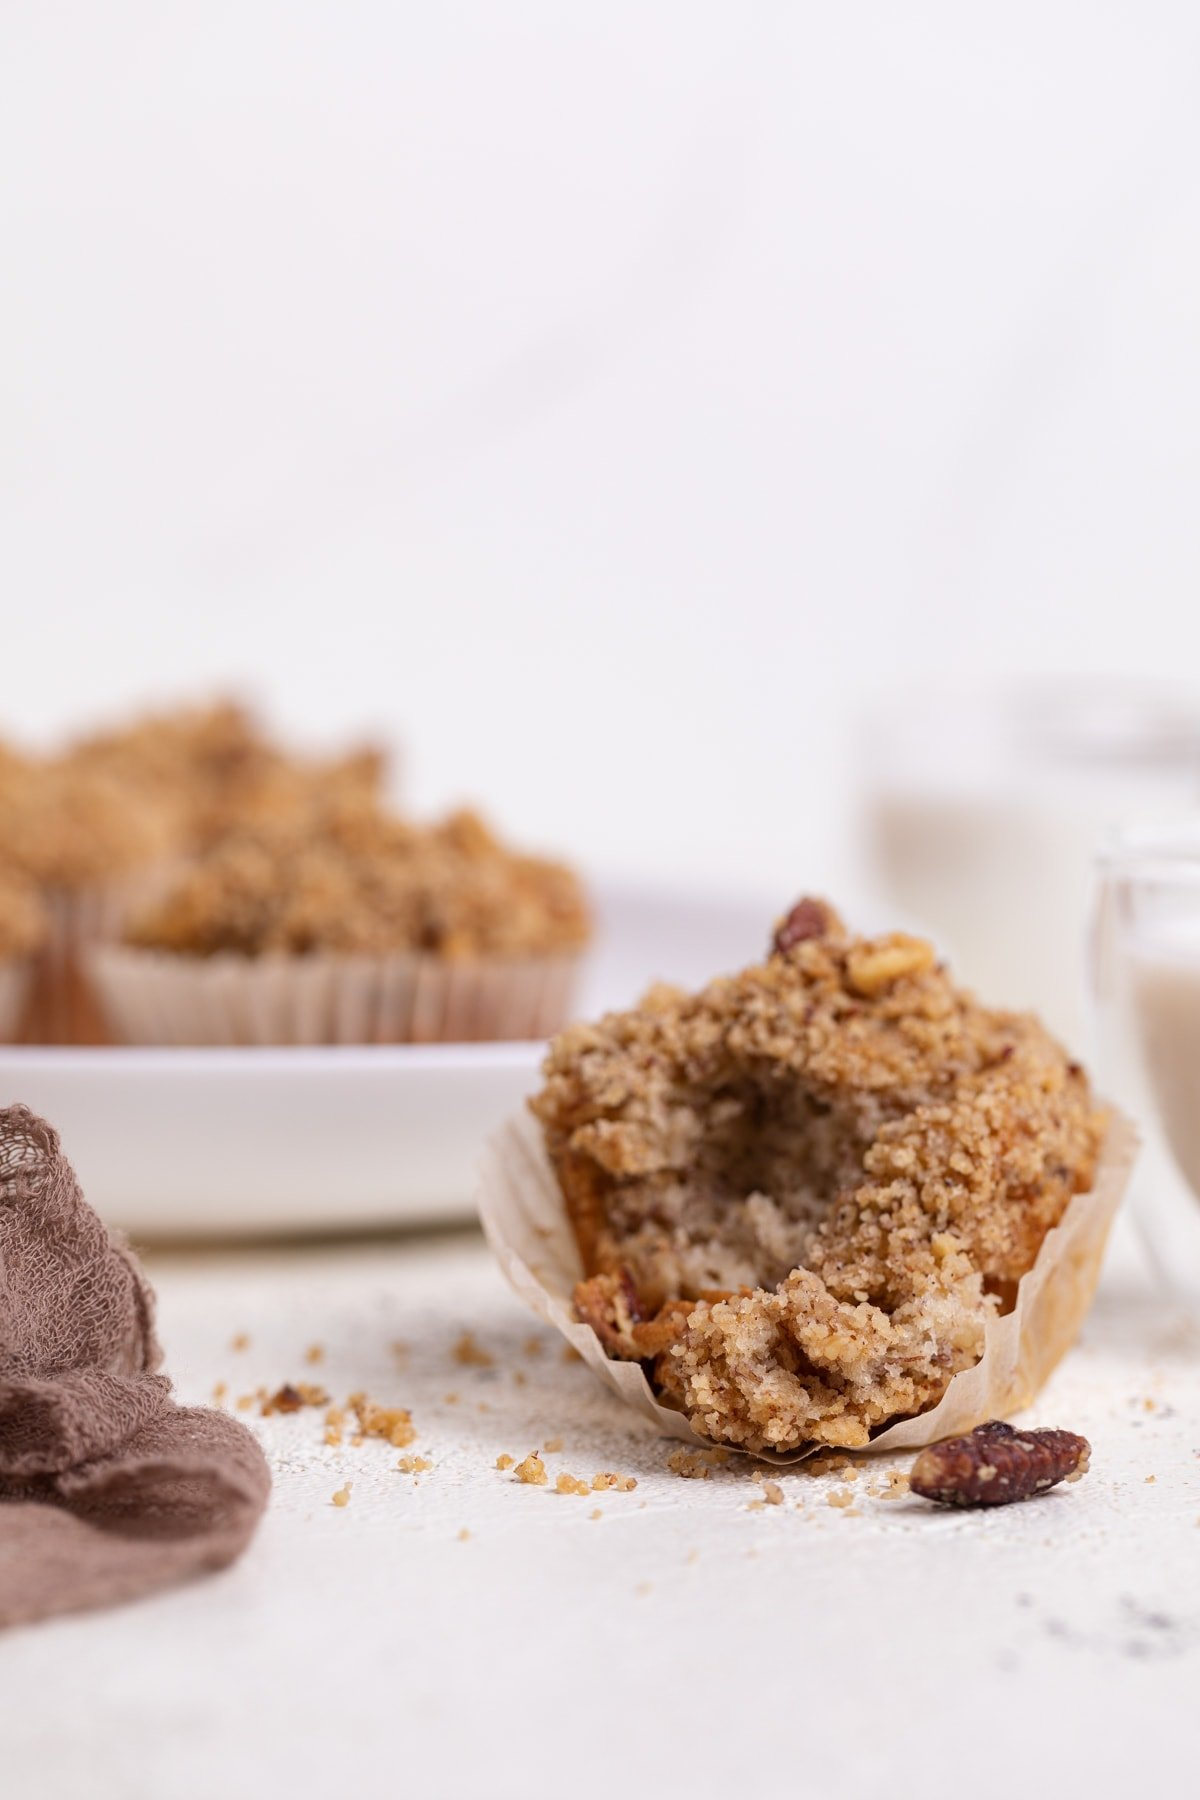 Vegan Banana Muffins with cinnamon streusel with a bite removed